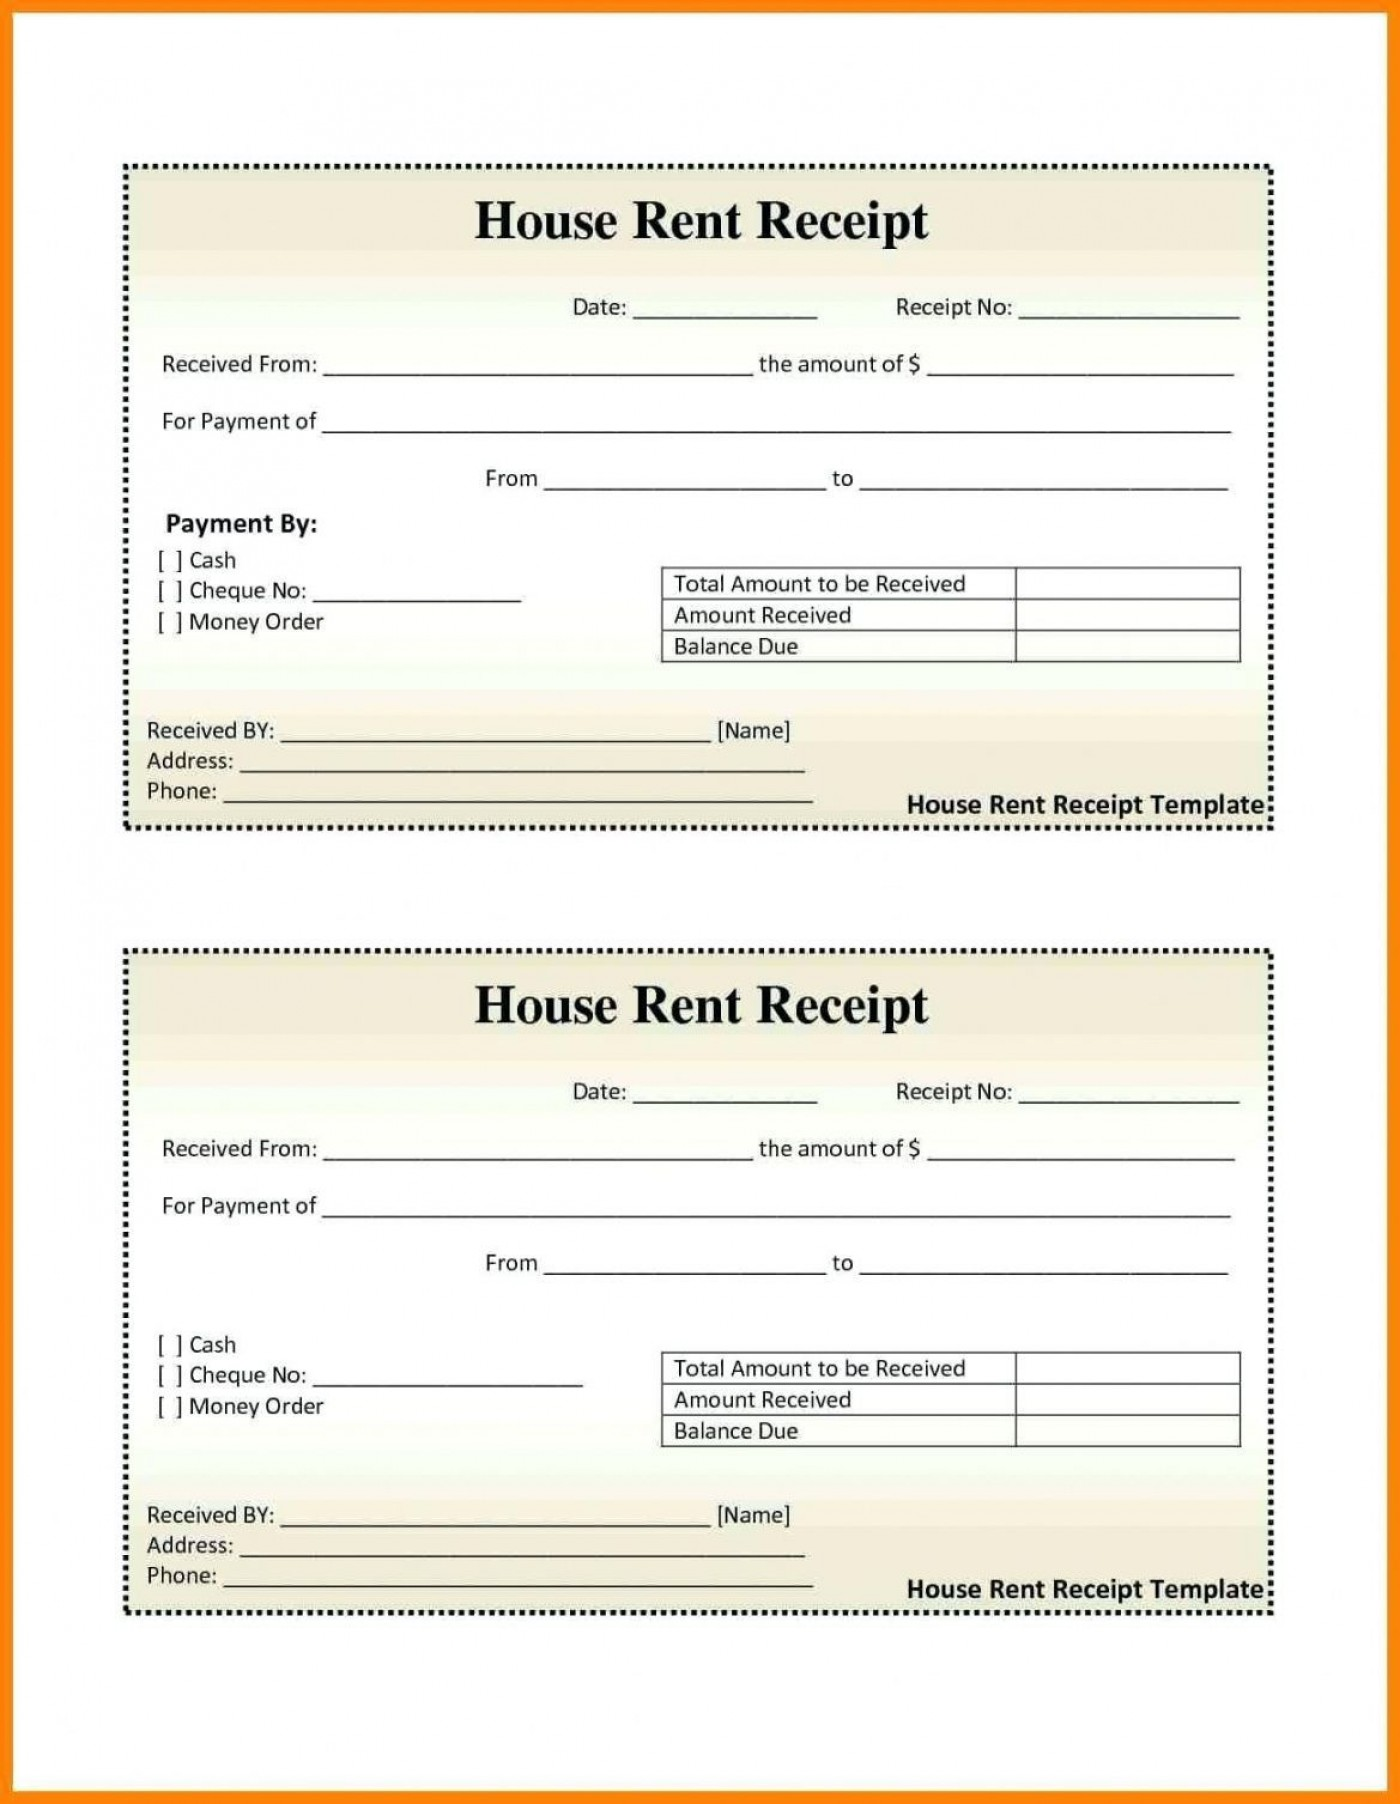 000 Excellent House Rent Receipt Sample Doc Photo  Template India Bill Format Word Document Pdf Download1400